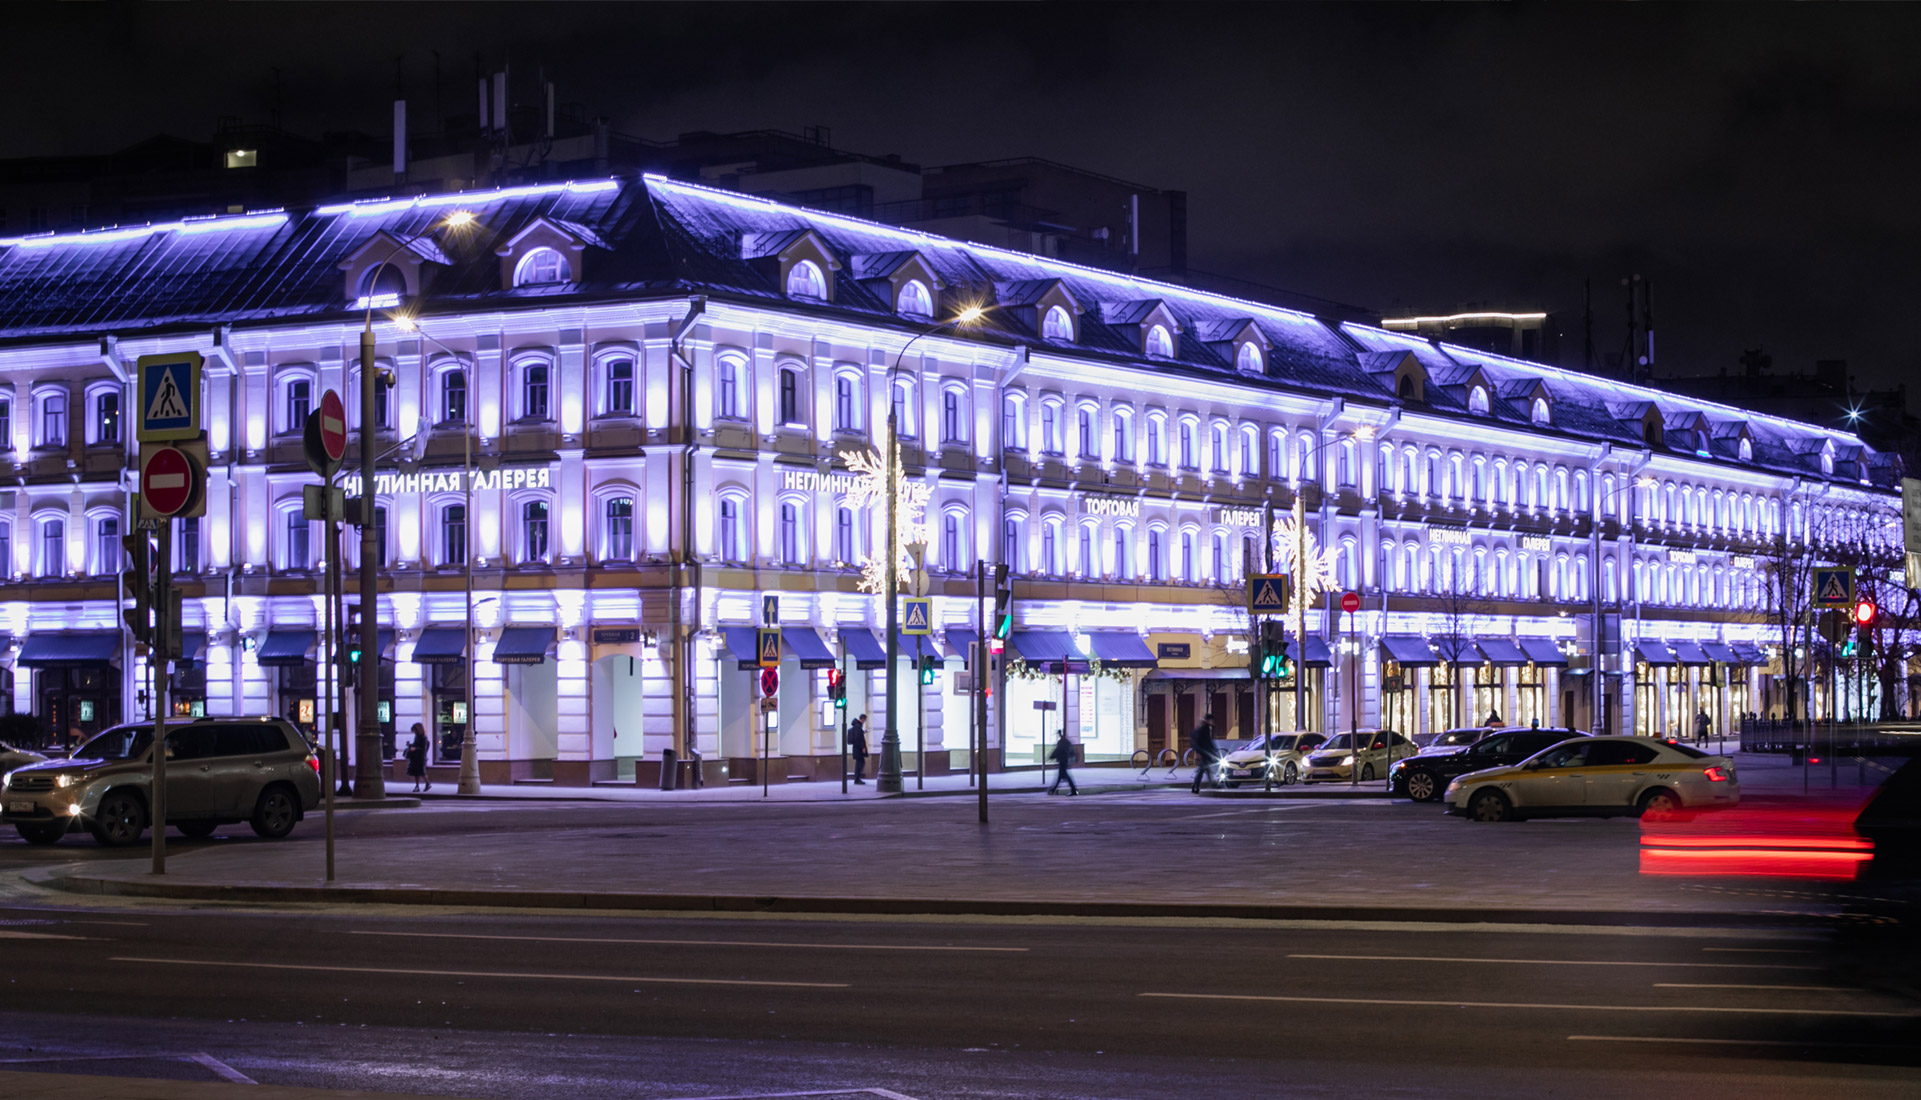 Neglinnaya Plaza, Trubnaya Square 2, Ground Floor - Moscow (Russia), immagine 3